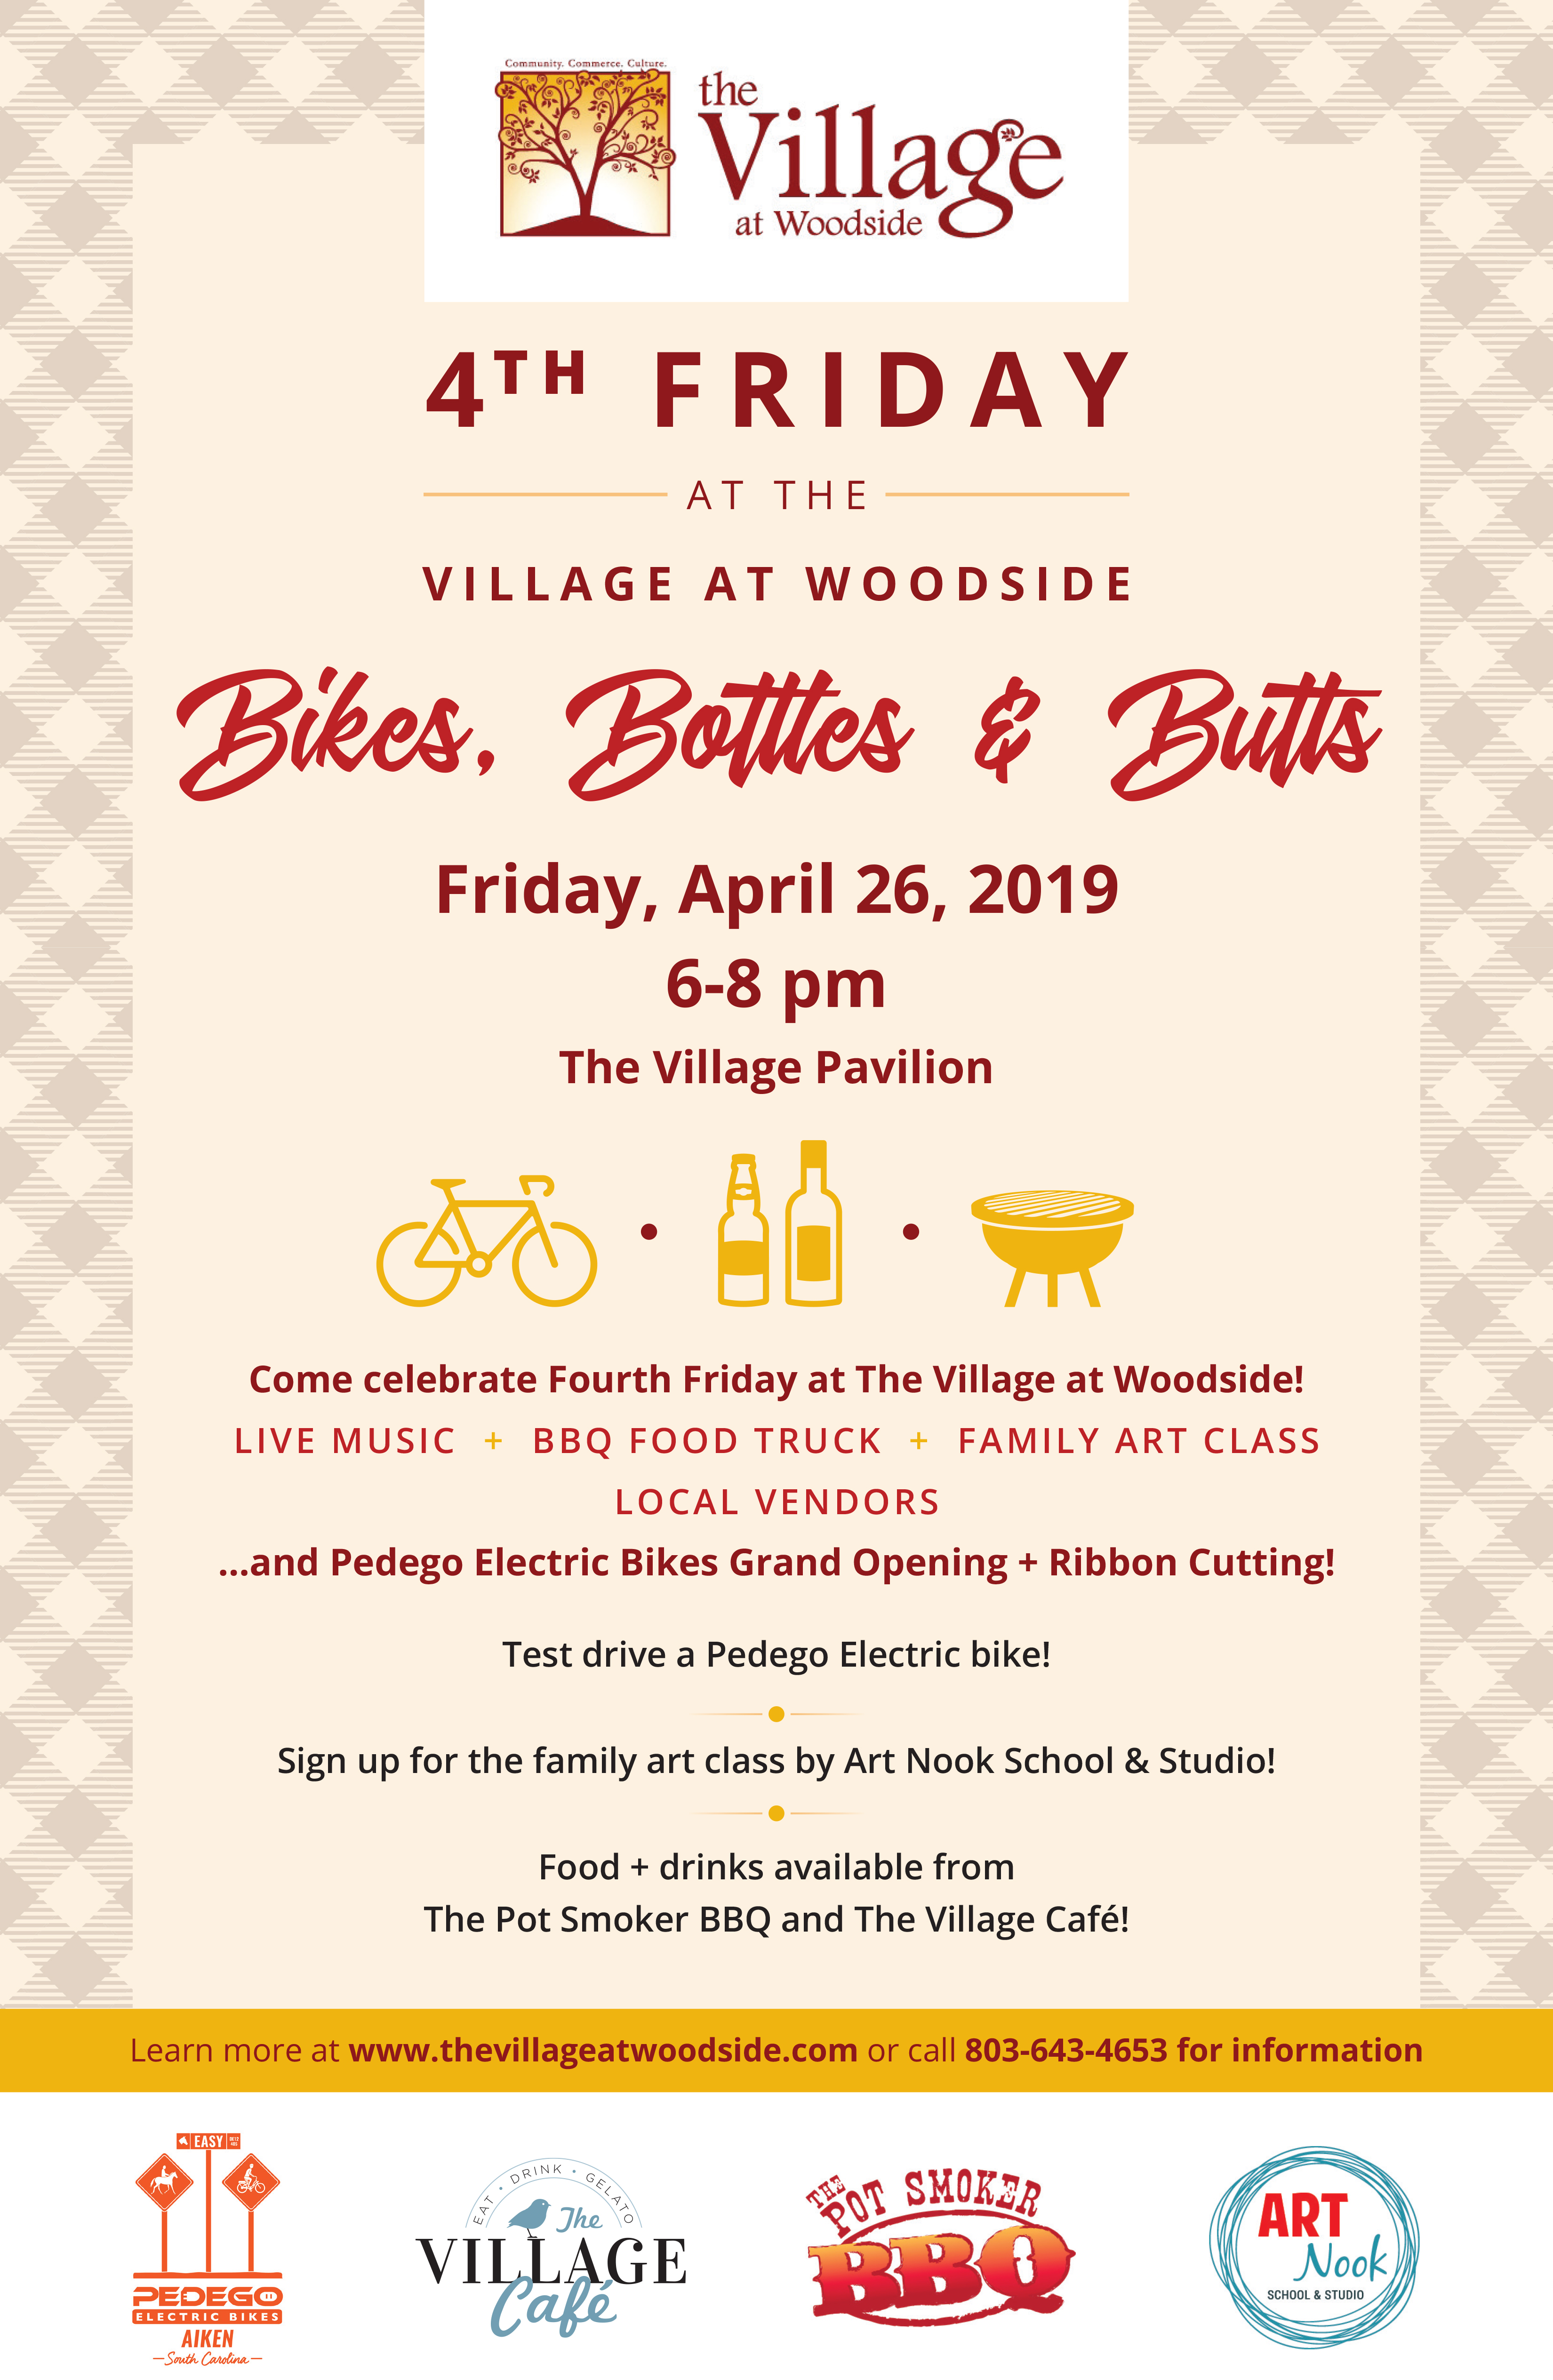 Fourth Friday - Bikes, Bottles, and Butts @ The Village at Woodside